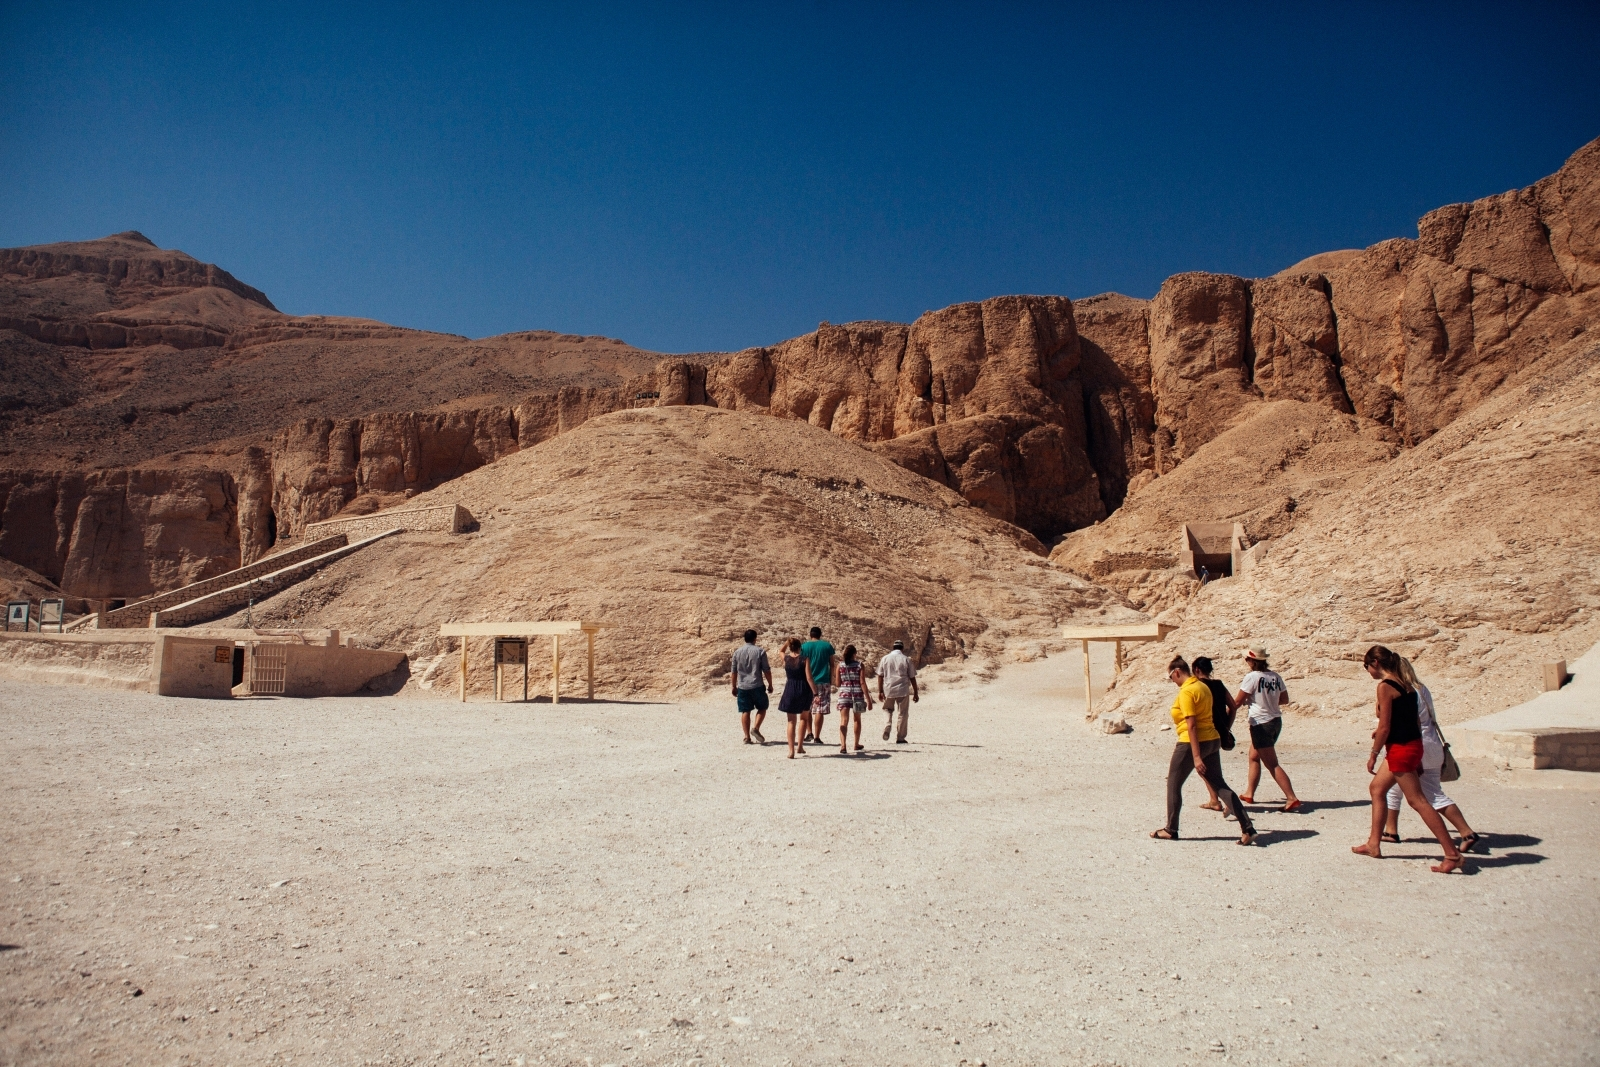 Ancient Egypt sites